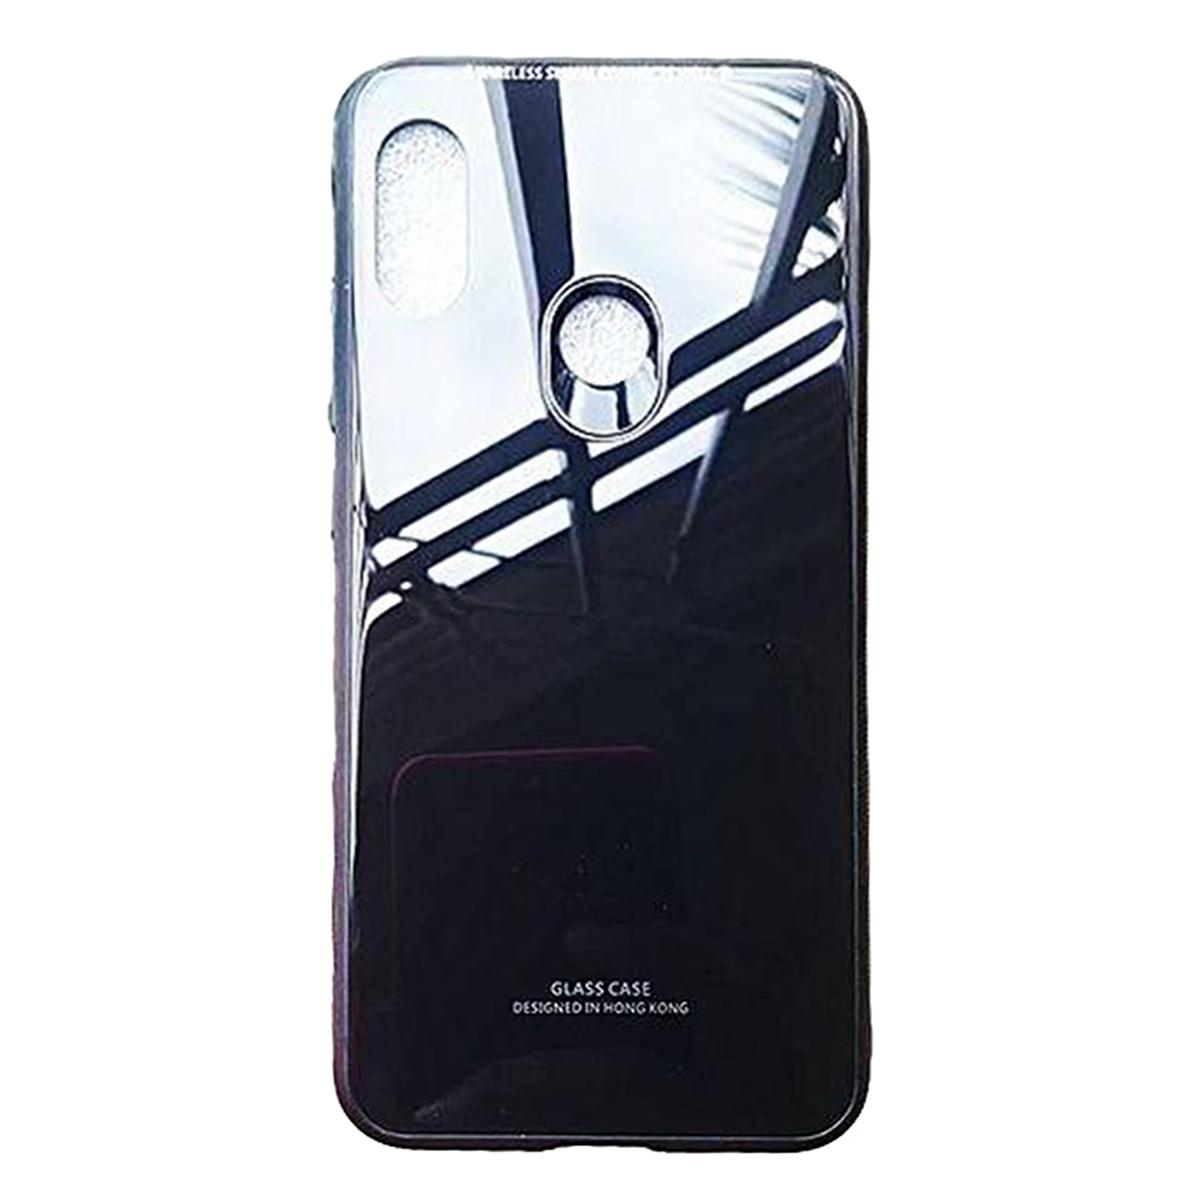 Mobile Phone Cover In Bangladesh At Best Price Softcase Xiaomi Redmi S2 Tempered Glass Black